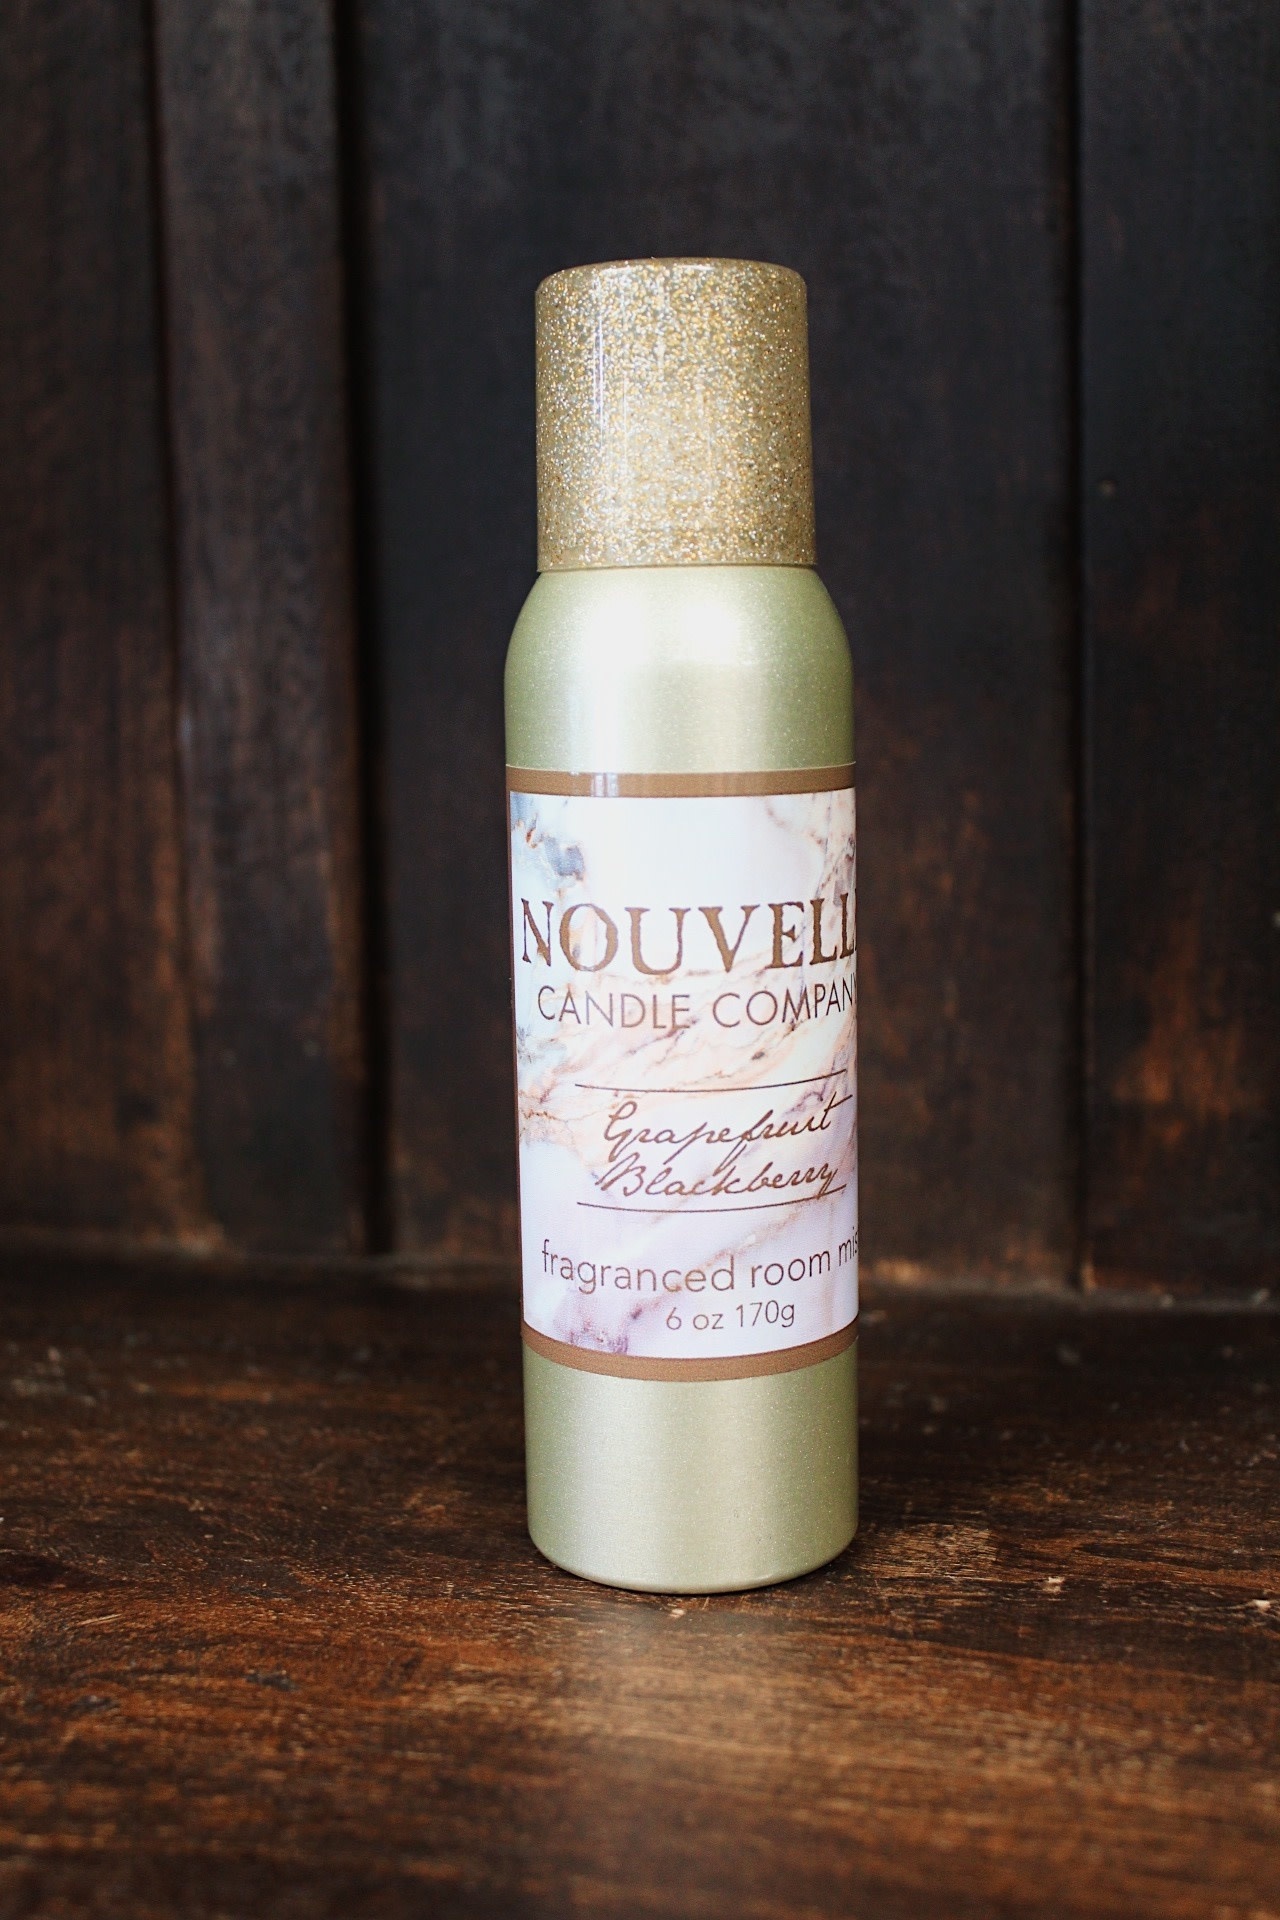 Nouvelle Candle Company Grapefruit Blackberry Room Spray